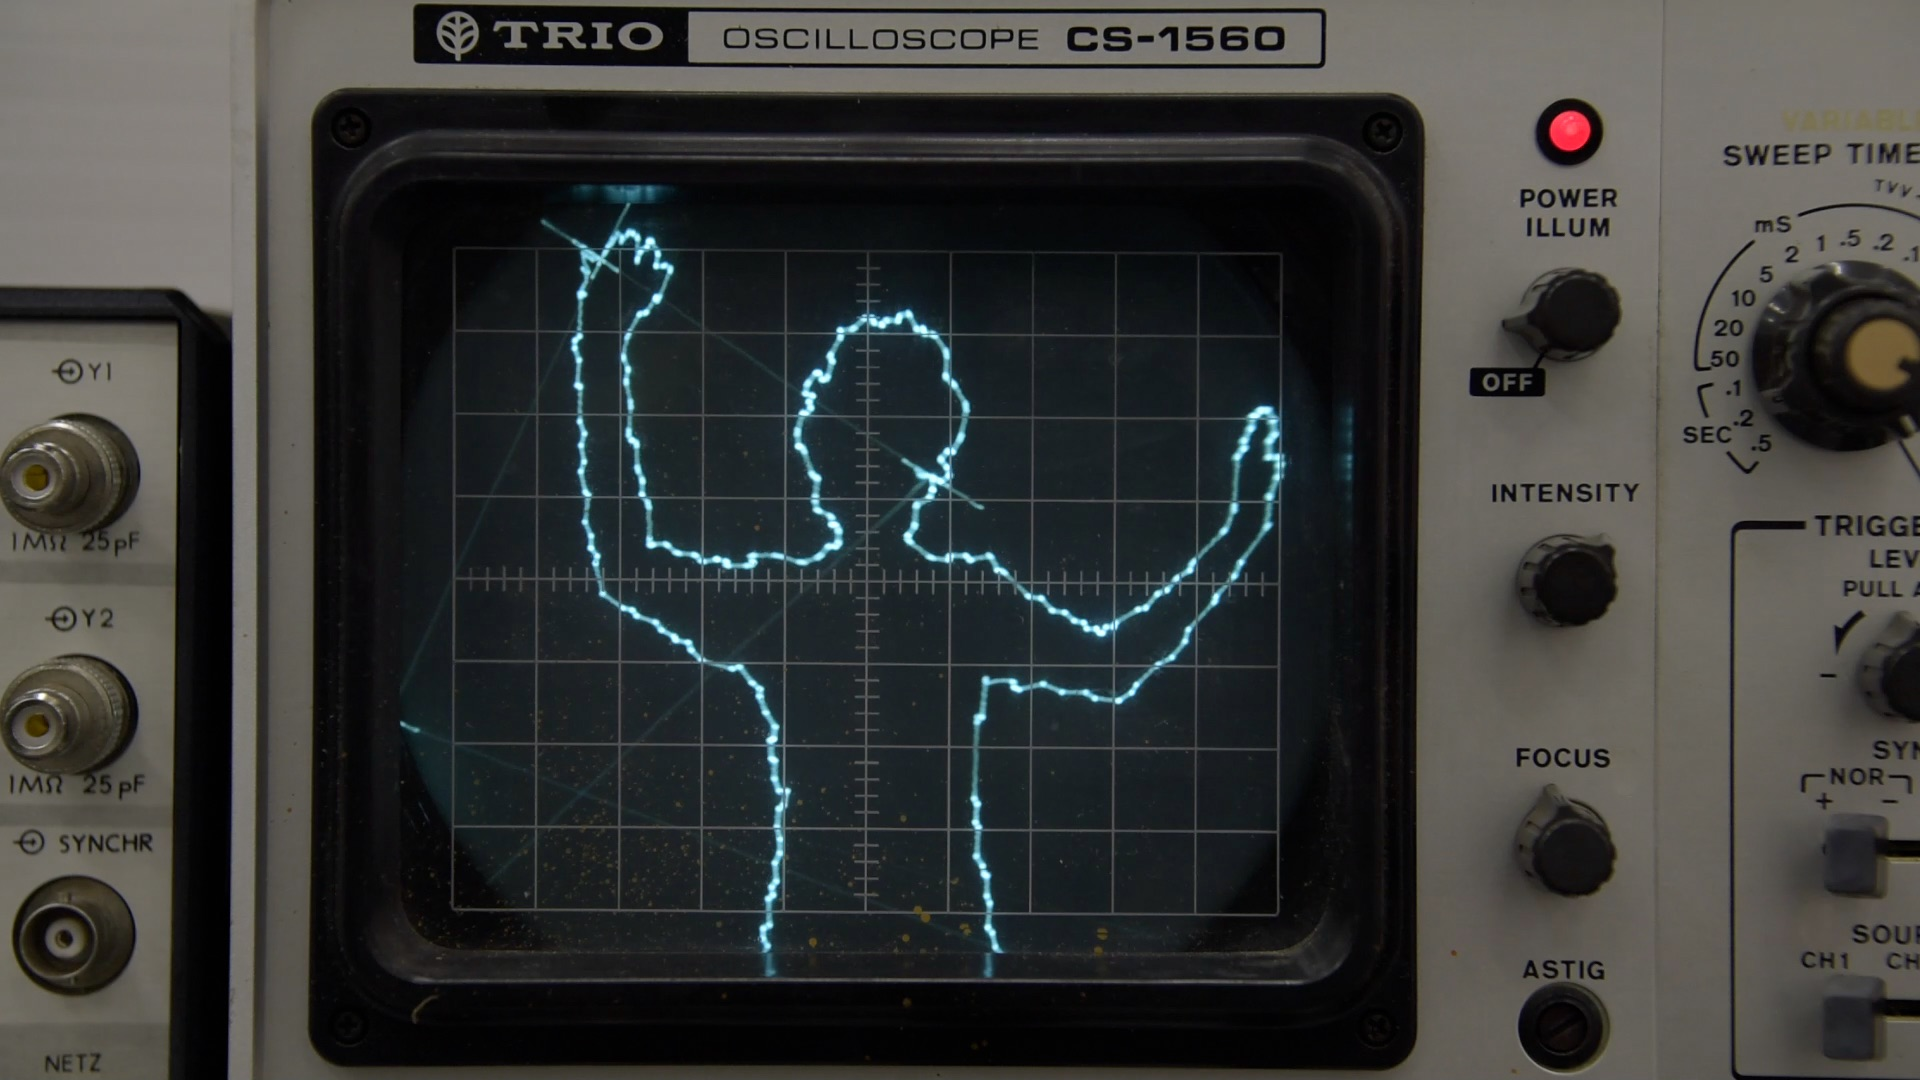 xyscope_kinect_mime - teds handy